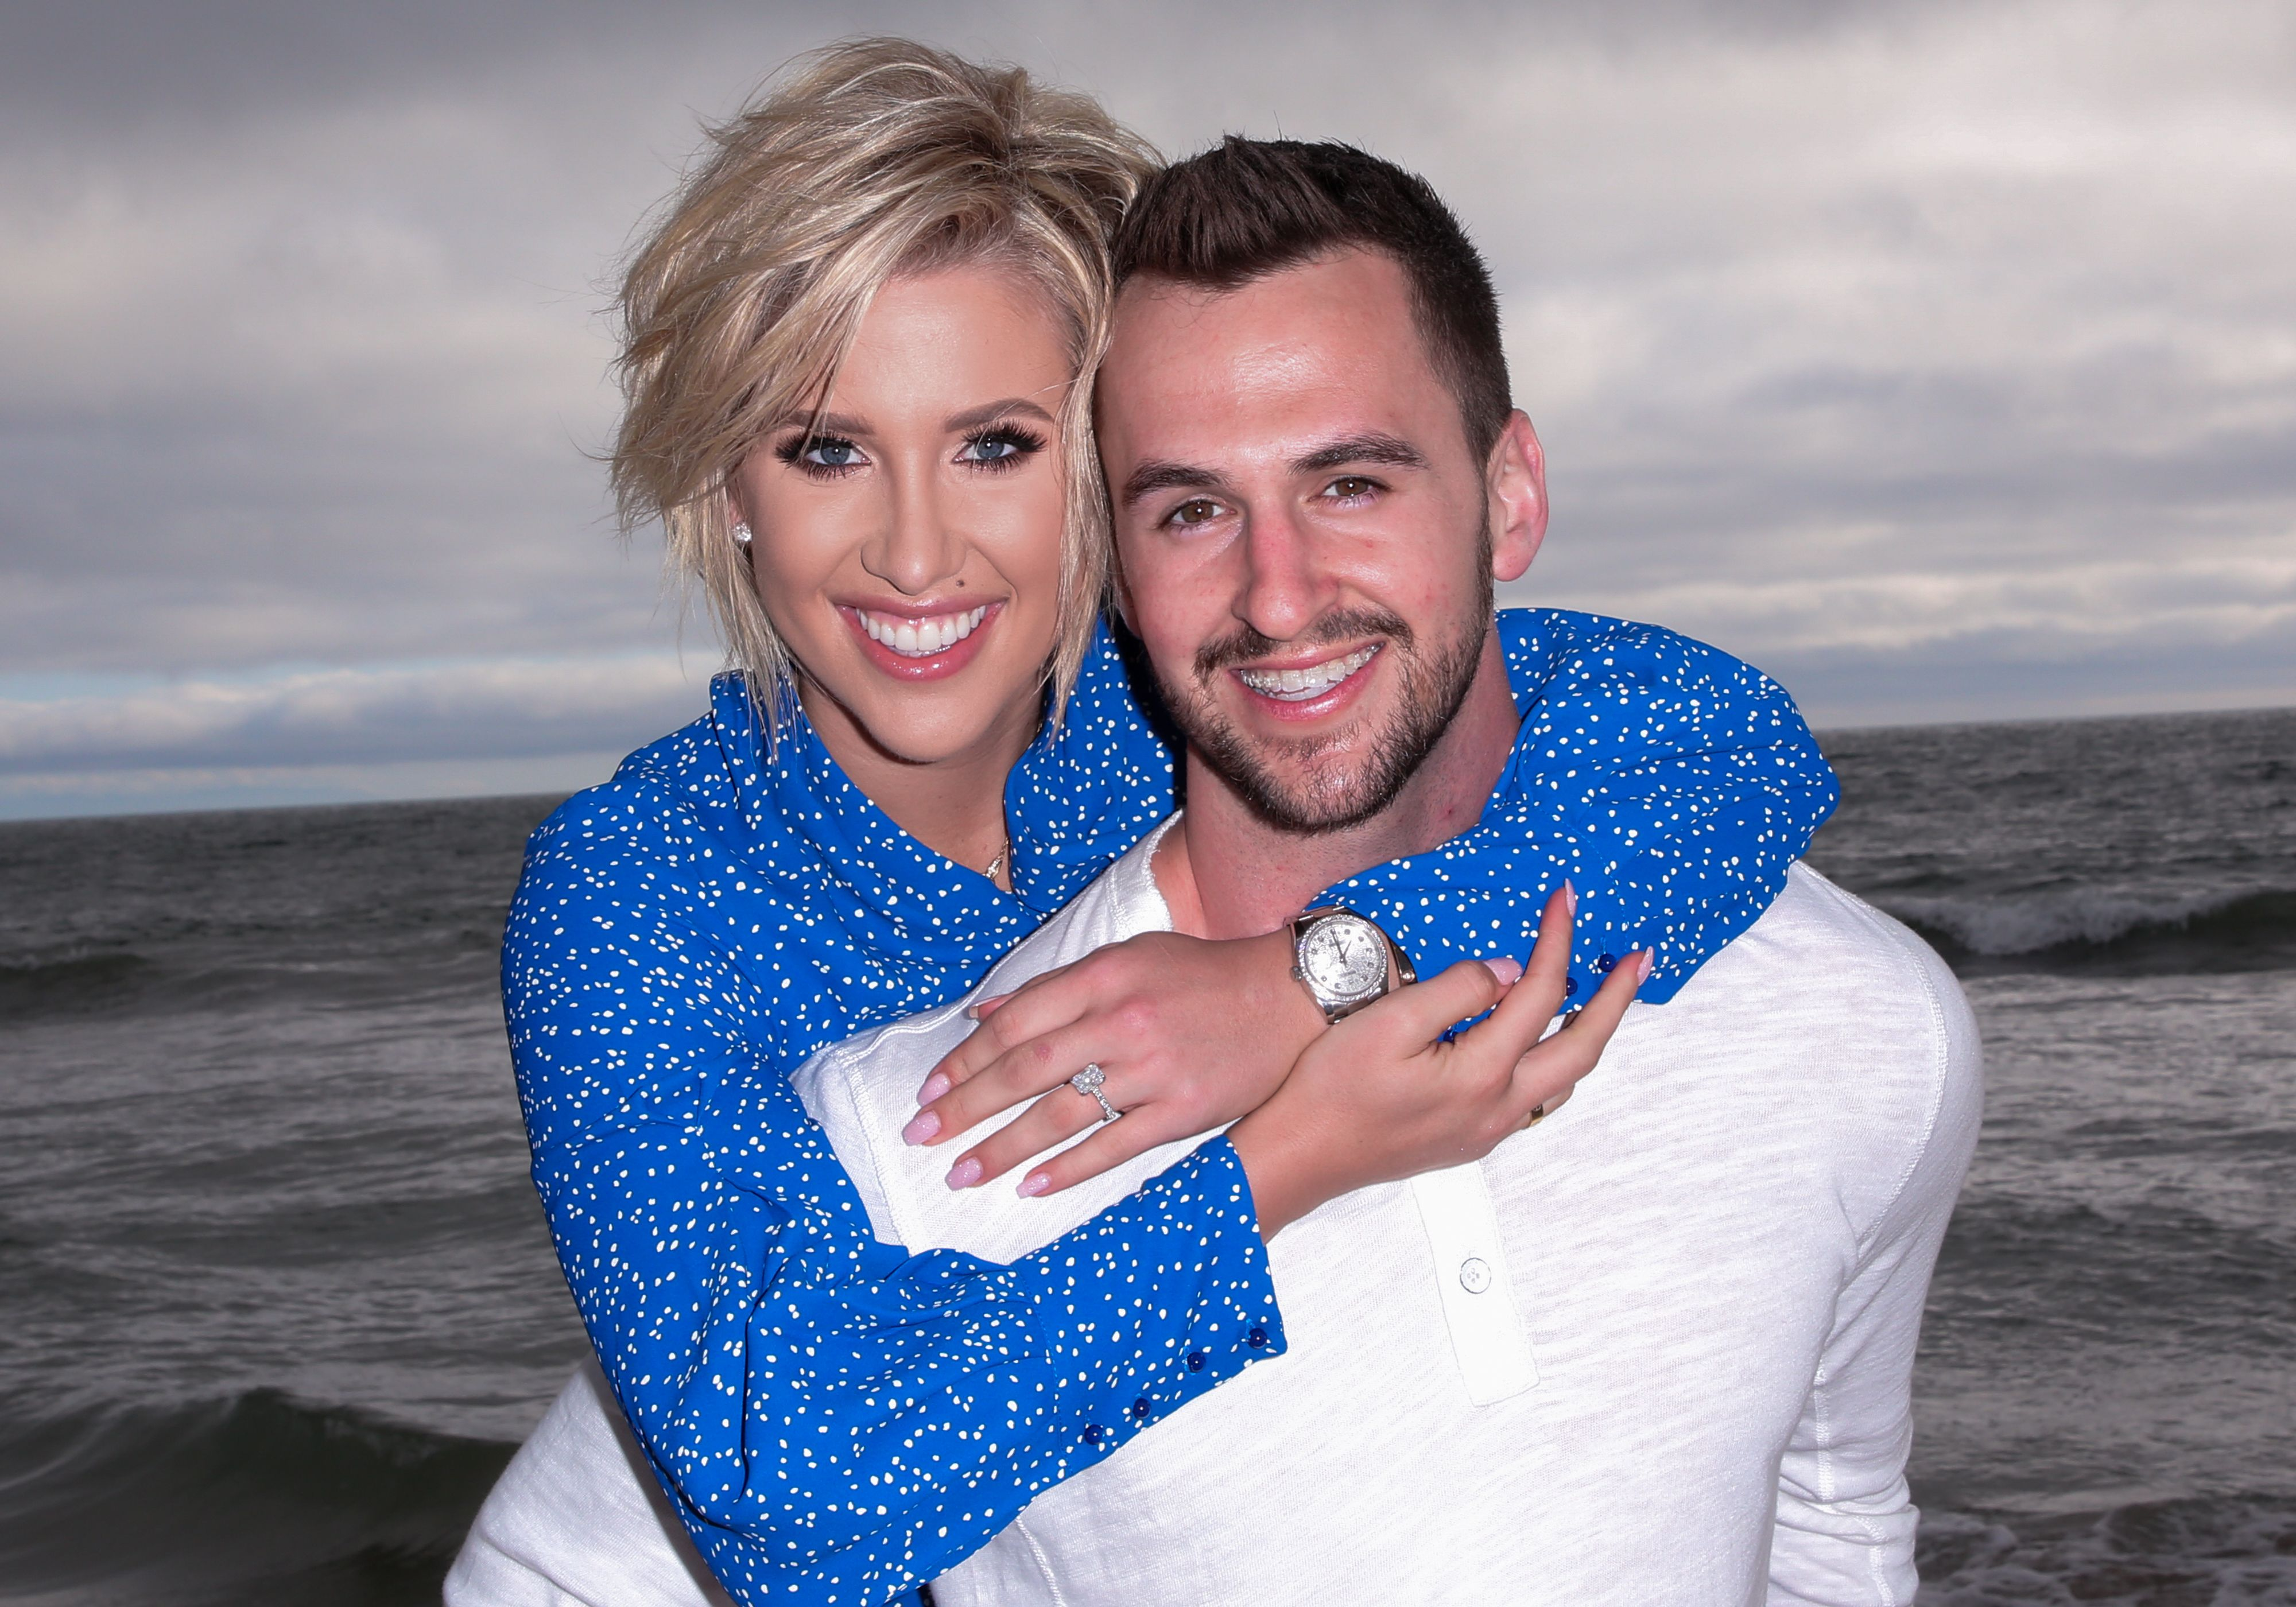 Savannah Chrisley and Nic Kerdiles smile for an engagement photo on March 27, 2019 in Santa Monica, California. | Source: Getty Images